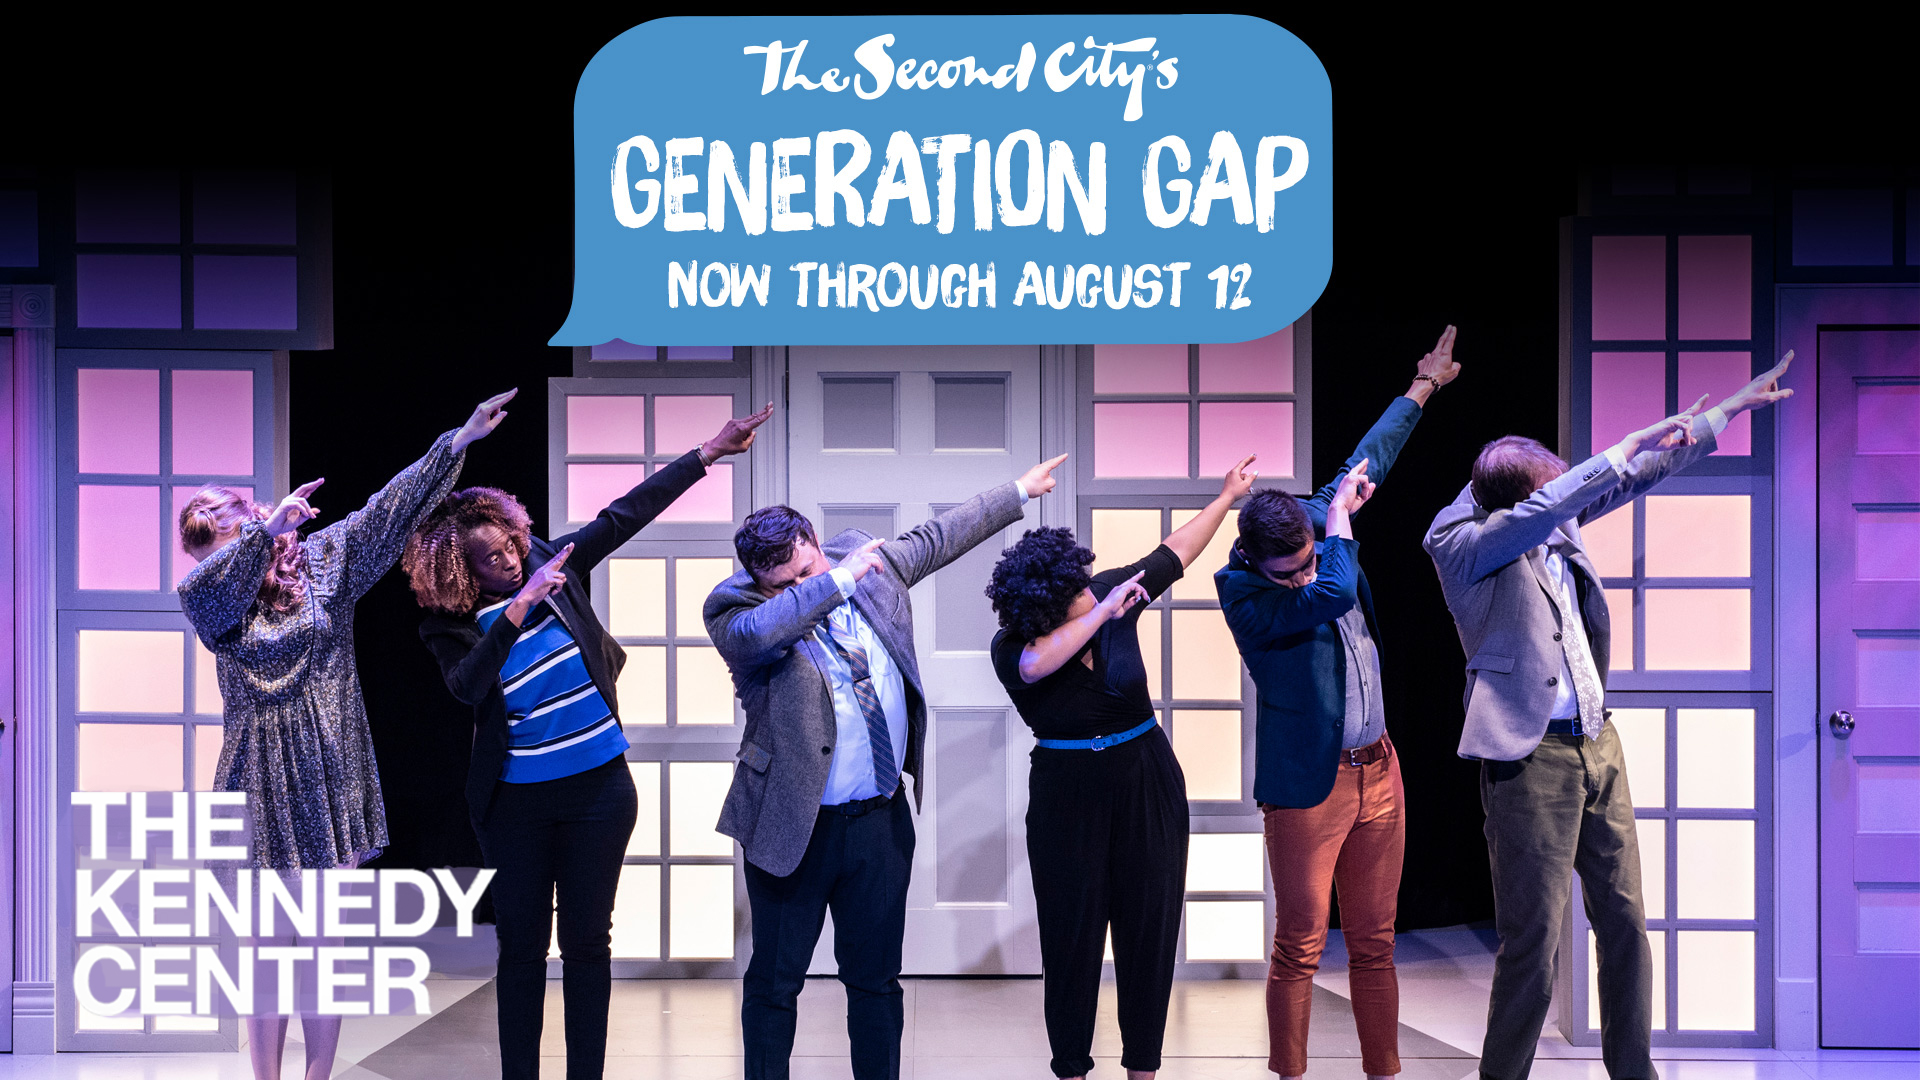 The Second City's Generation Gap at The Kennedy Center